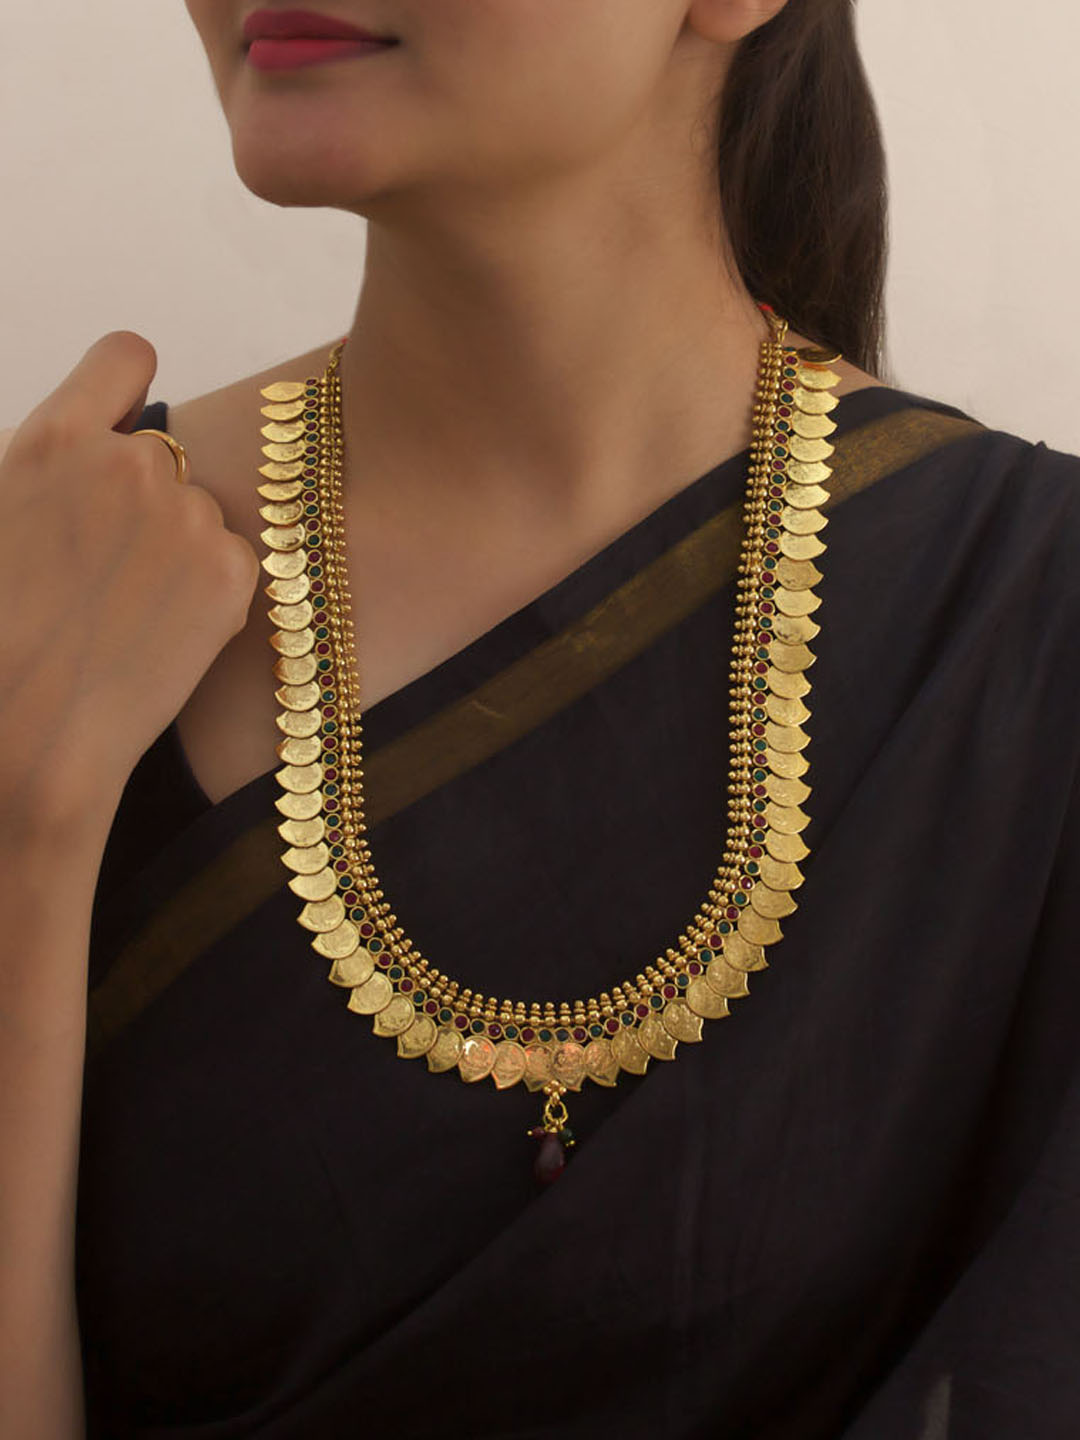 Antique Gold Plated Lakshmi Design Temple Jewelry Coin Necklace By Avismaya-AVISMAYA-Necklace